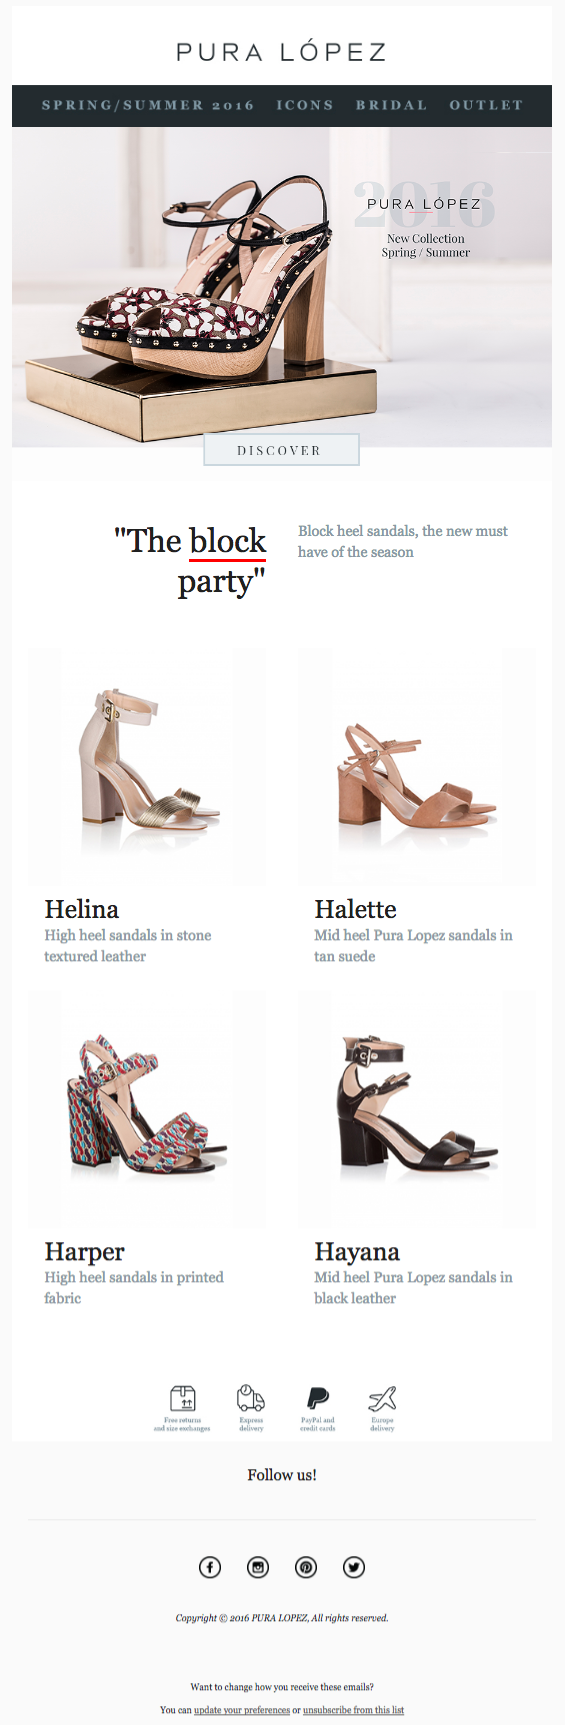 Image of a webpage selling shoes